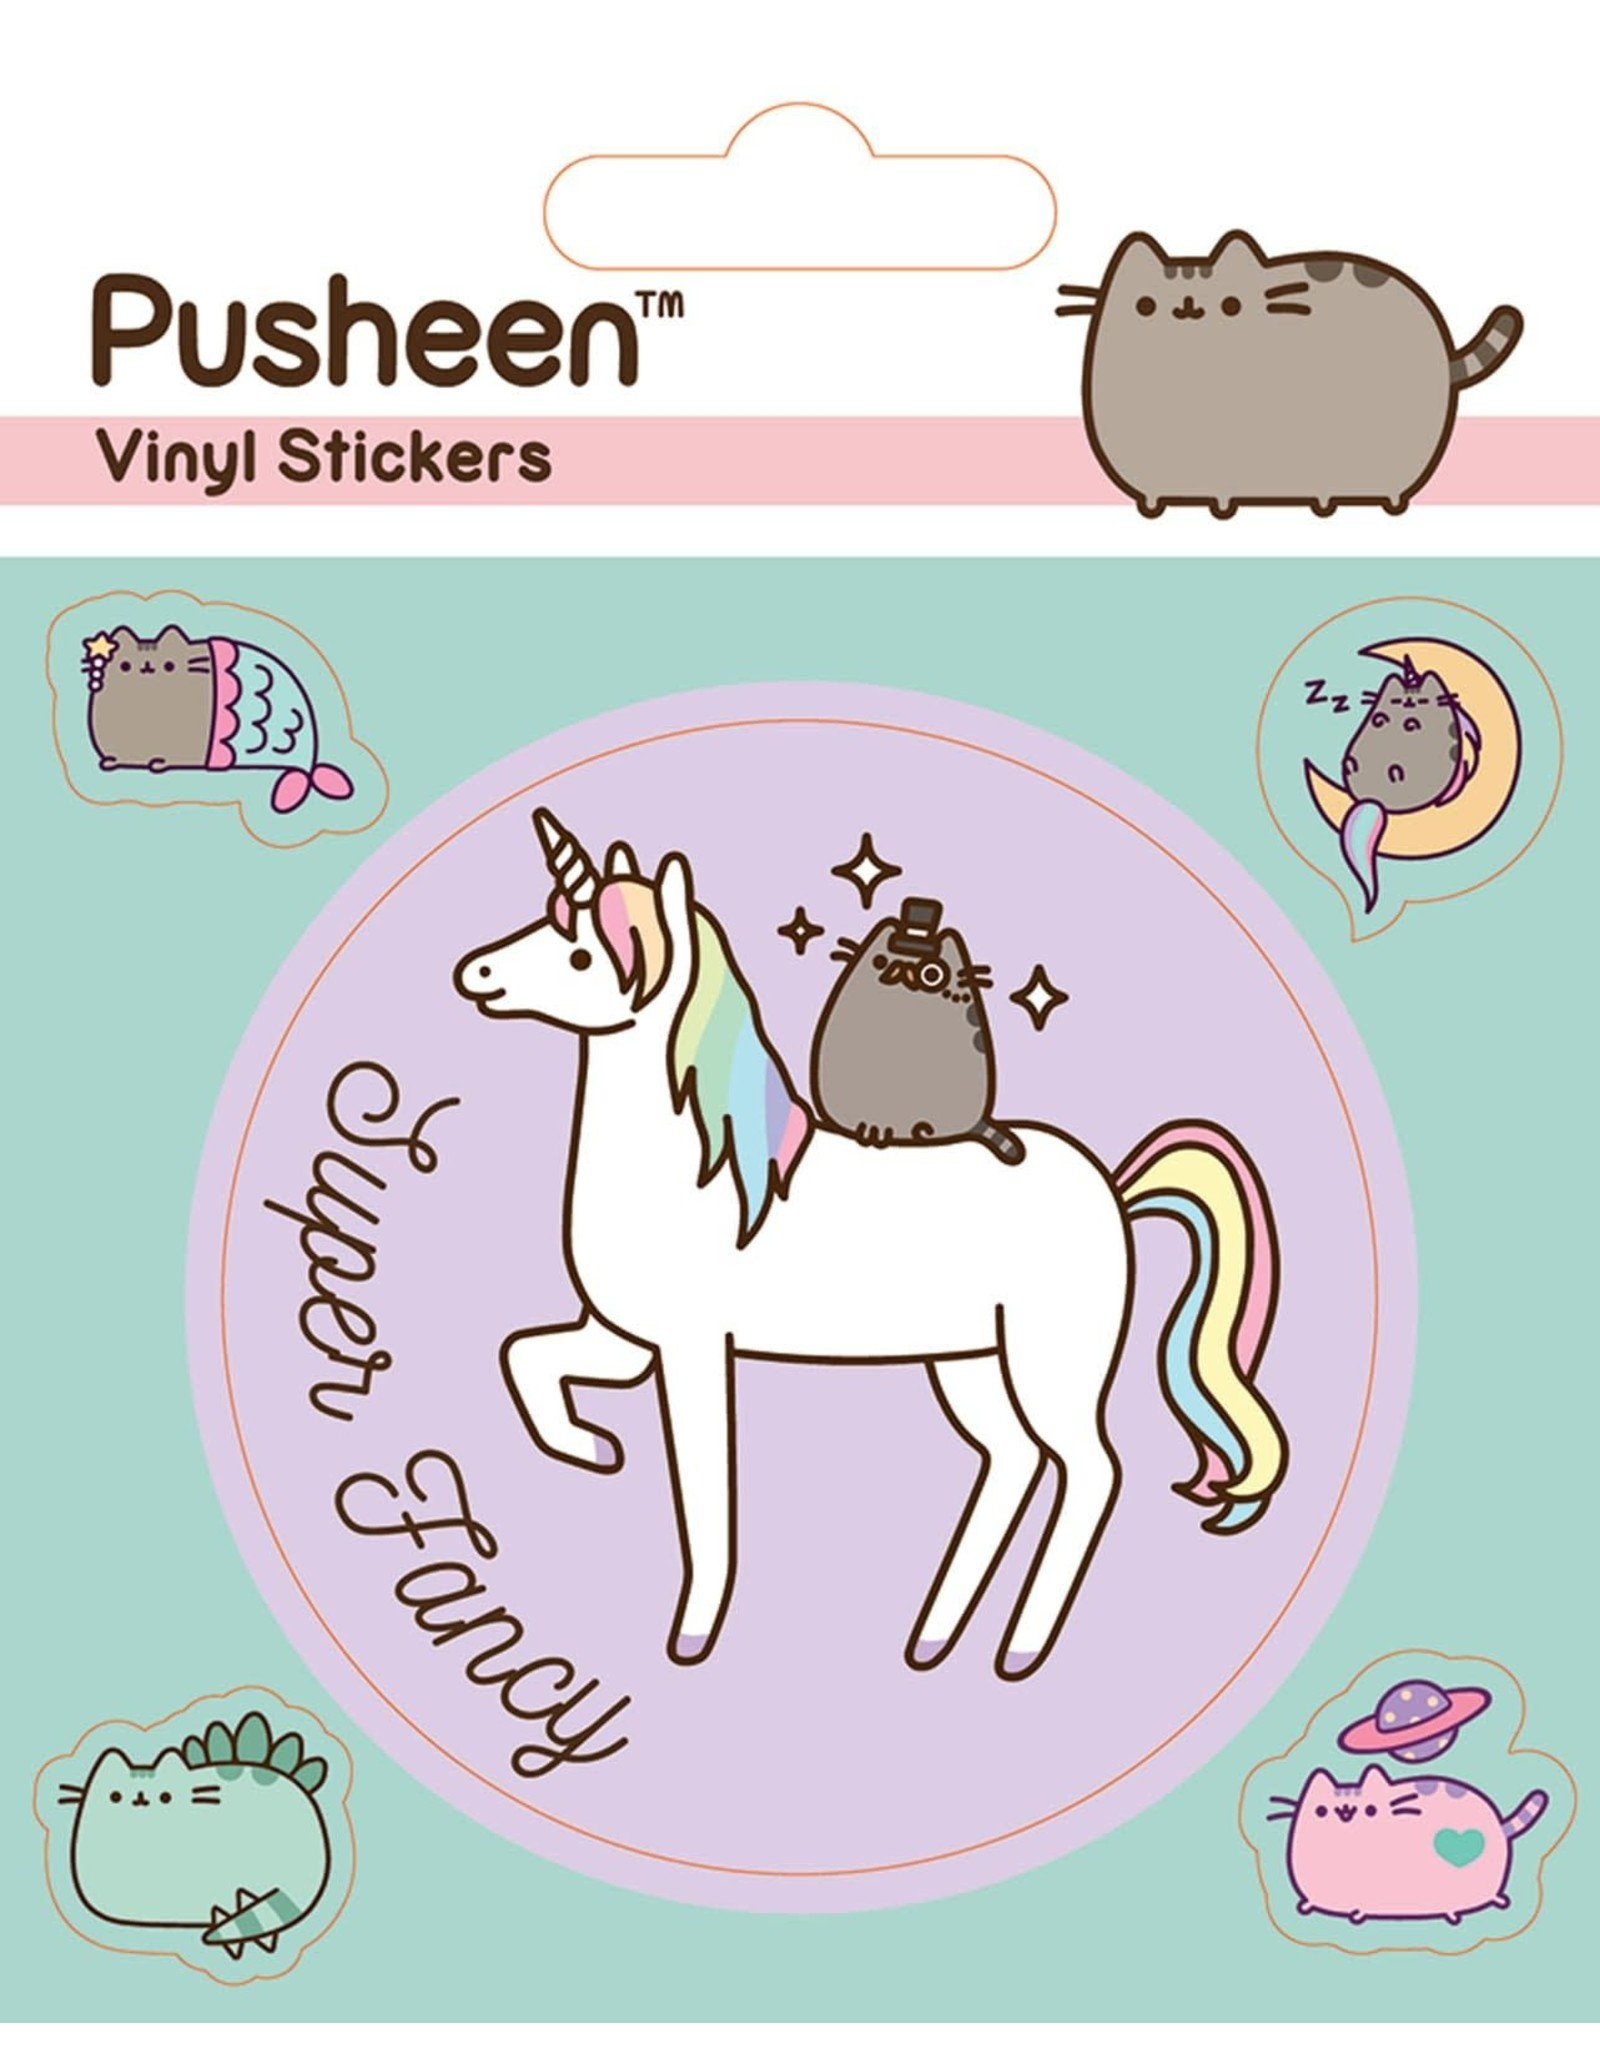 PUSHEEN Vinyl Stickers - Mythical